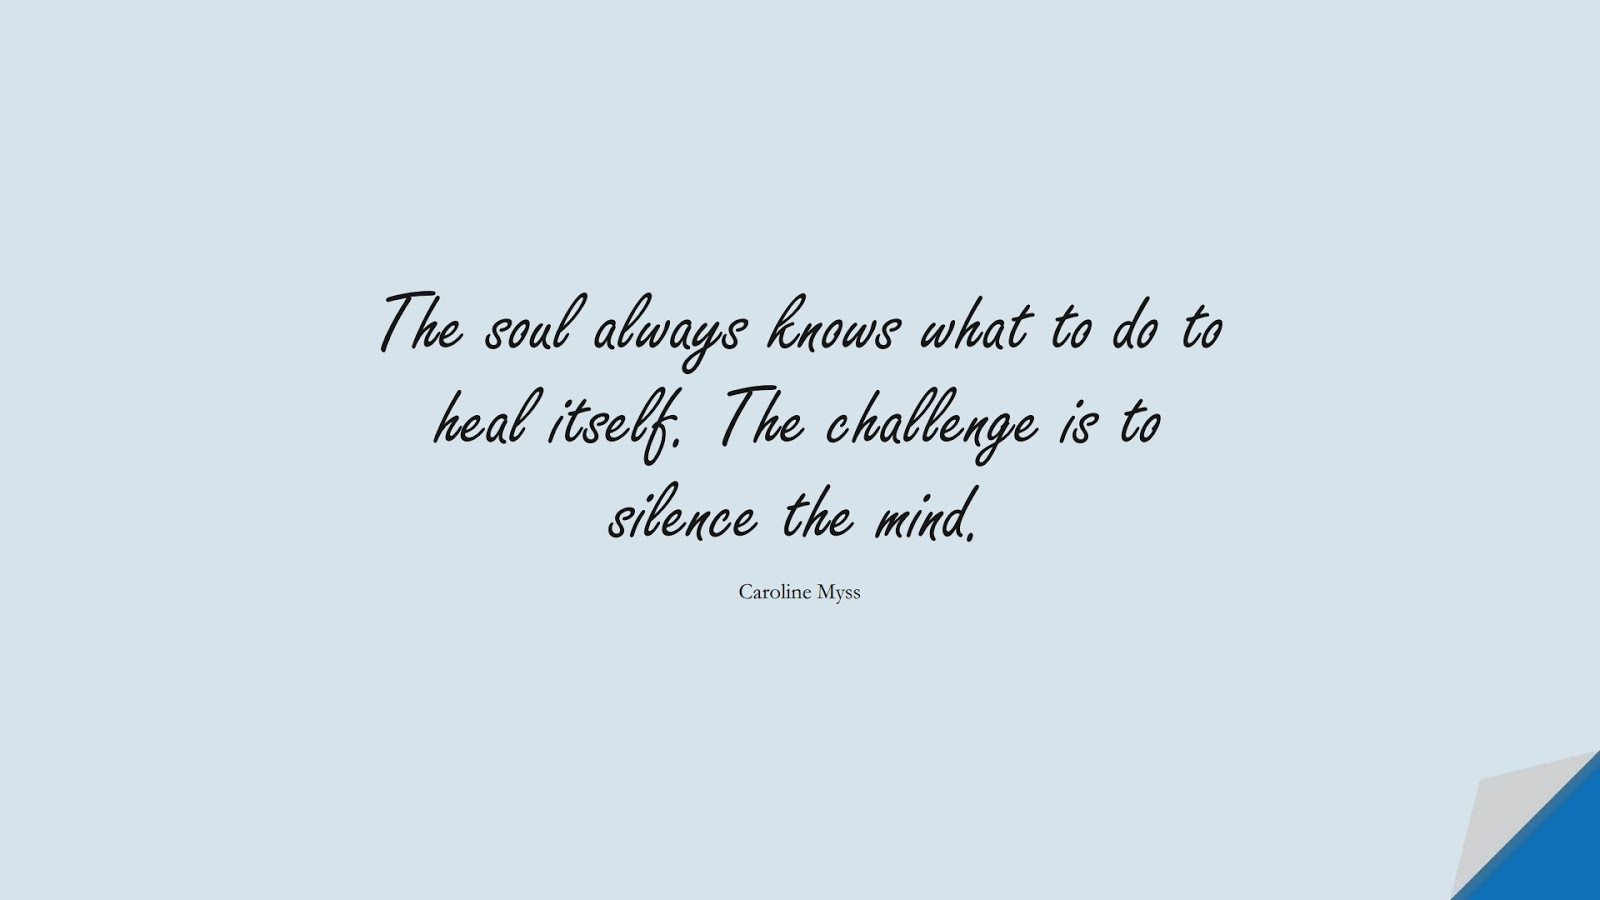 The soul always knows what to do to heal itself. The challenge is to silence the mind. (Caroline Myss);  #HealthQuotes